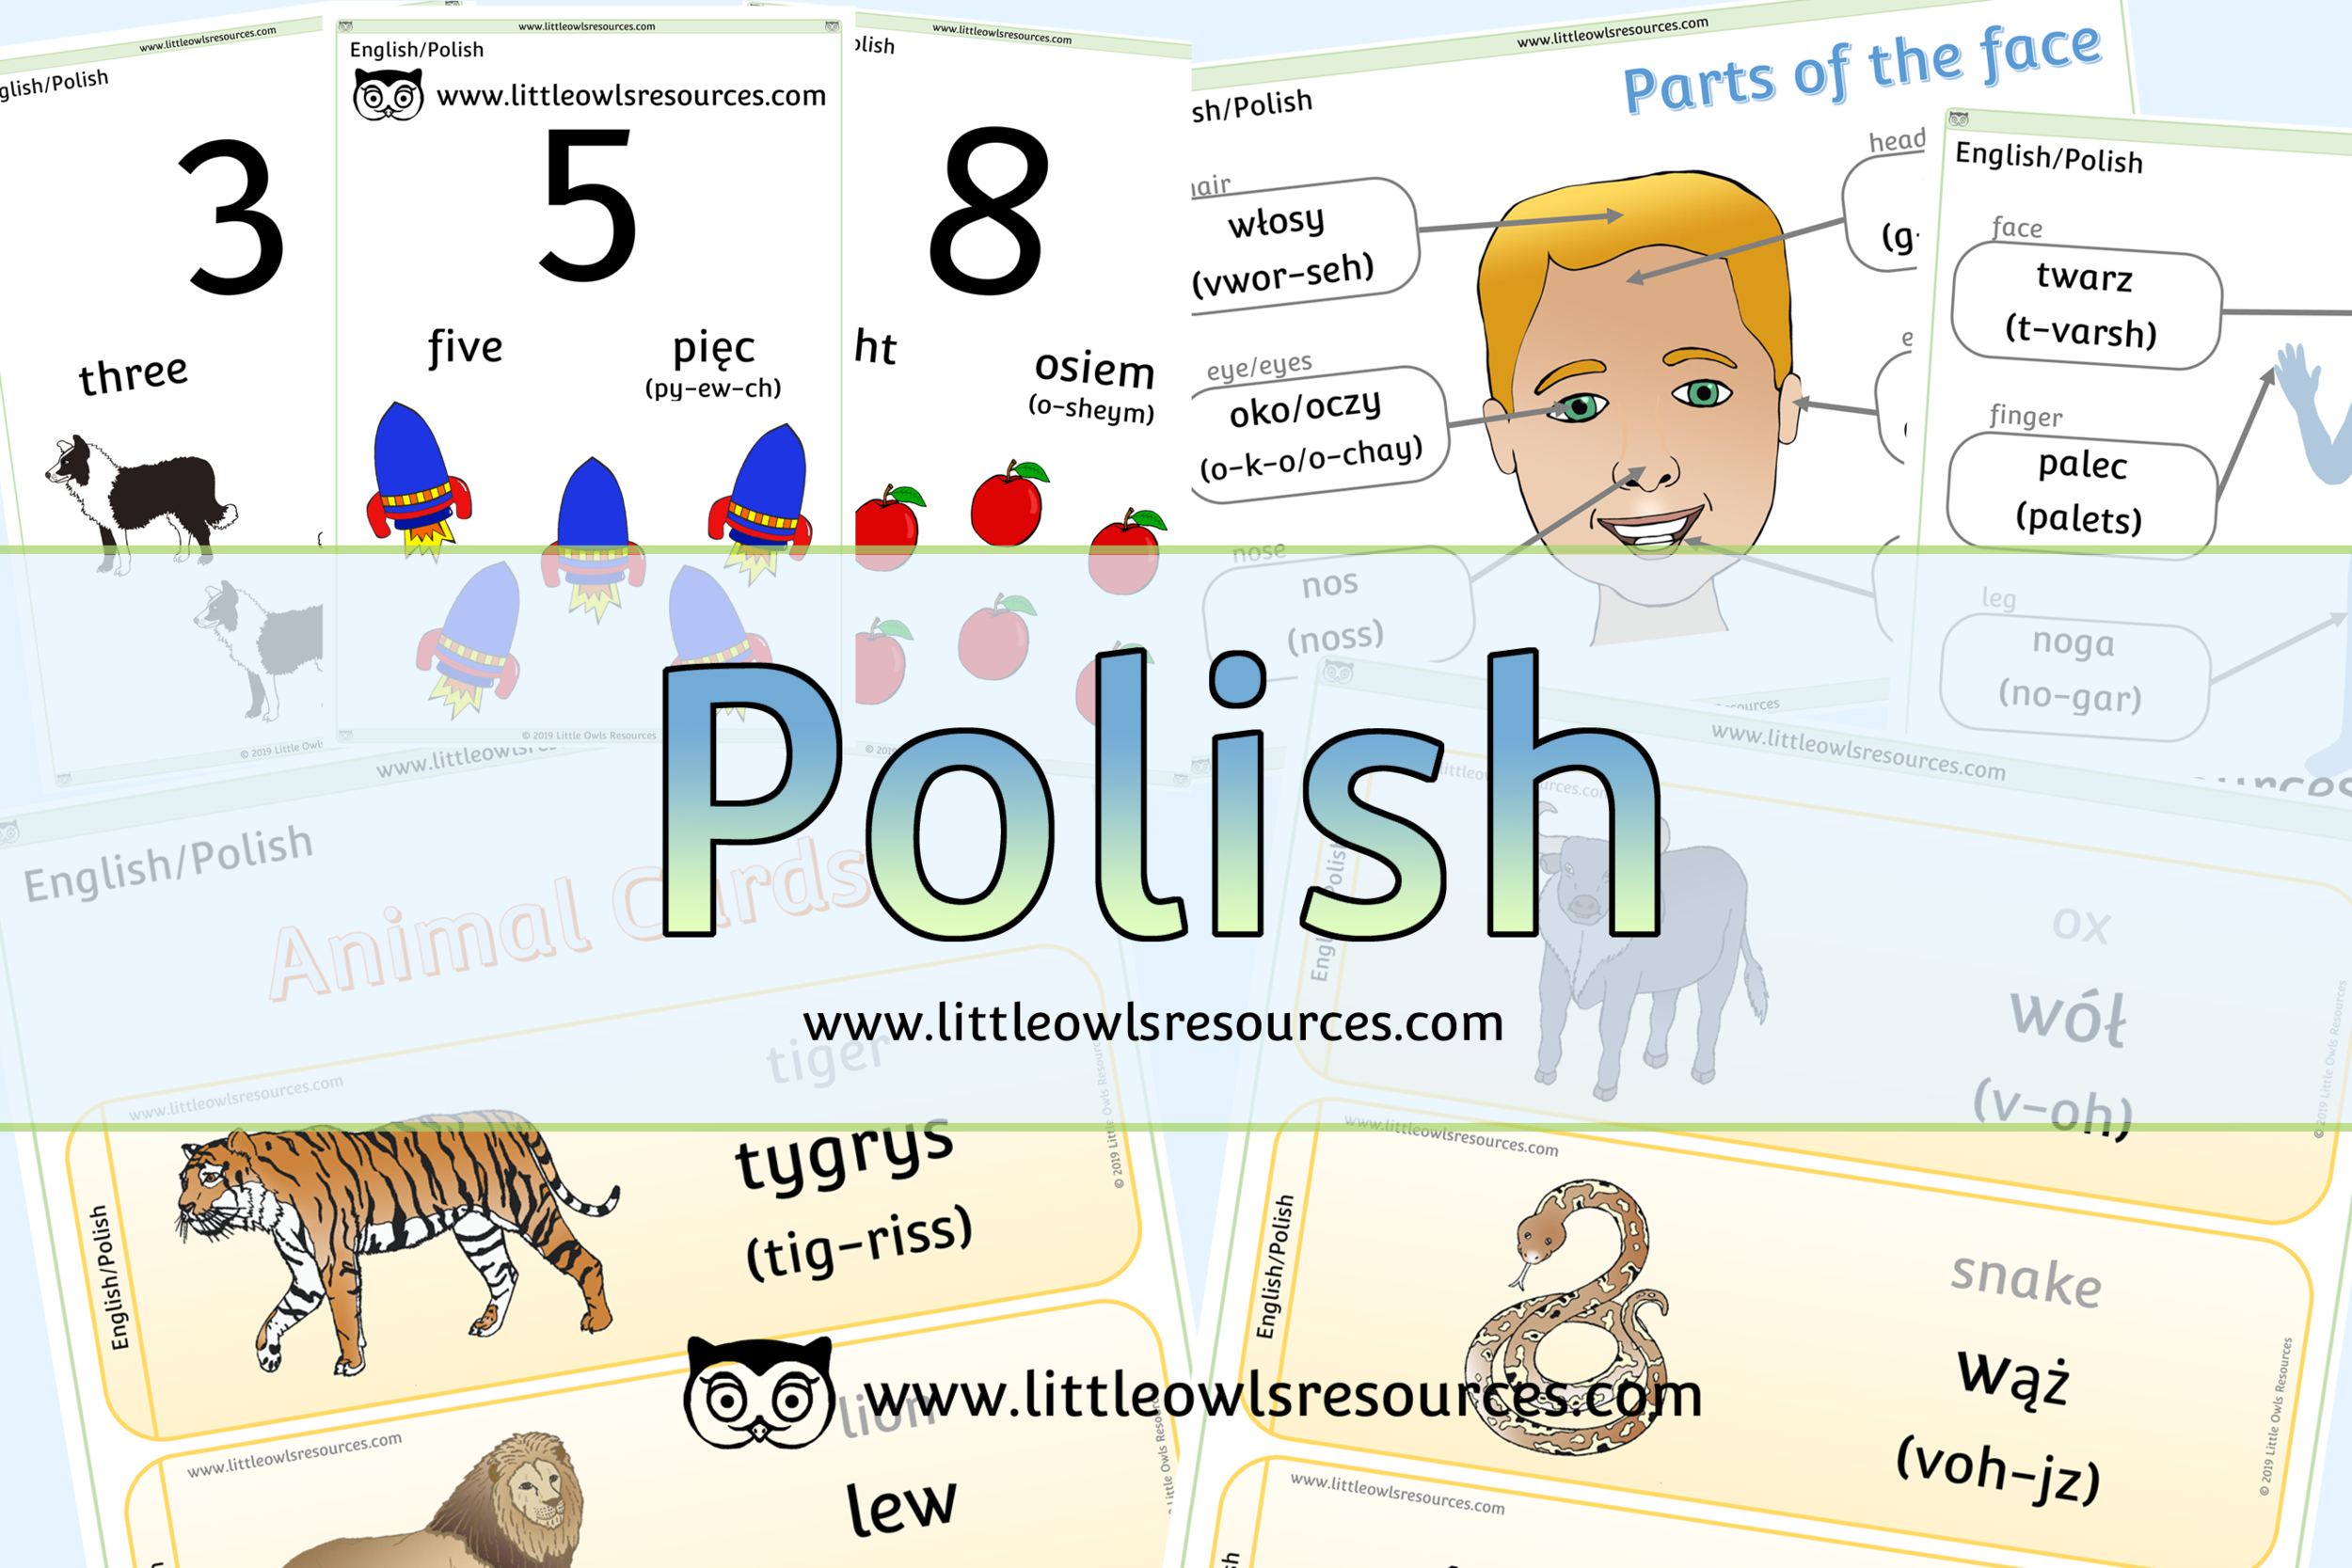 Polish/English Dual Language Resources